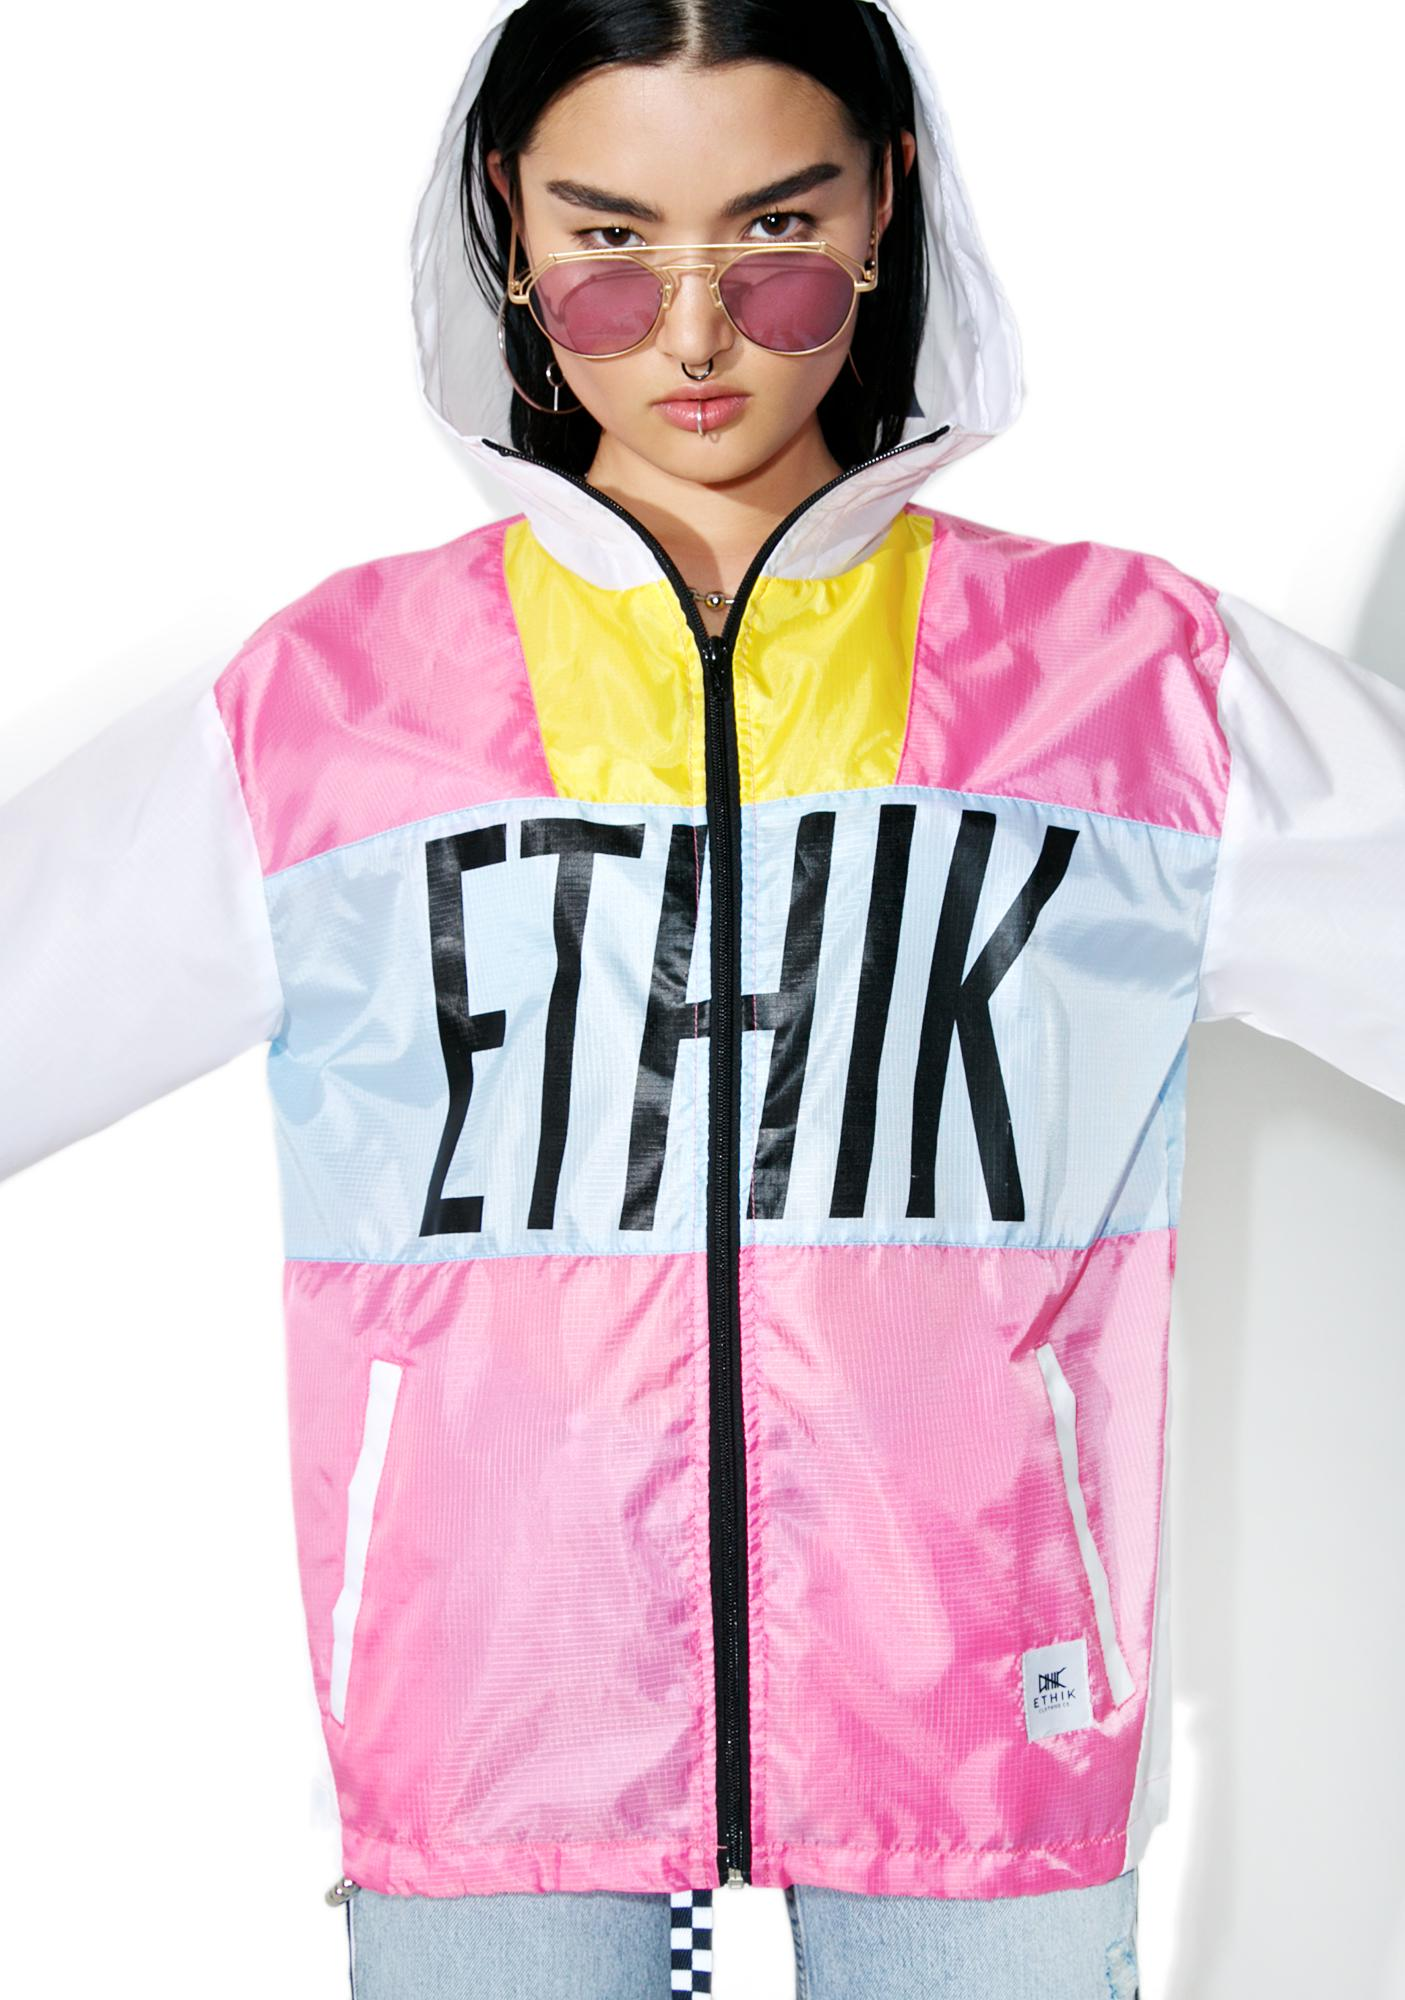 ETHIK Training Camp Windbreaker